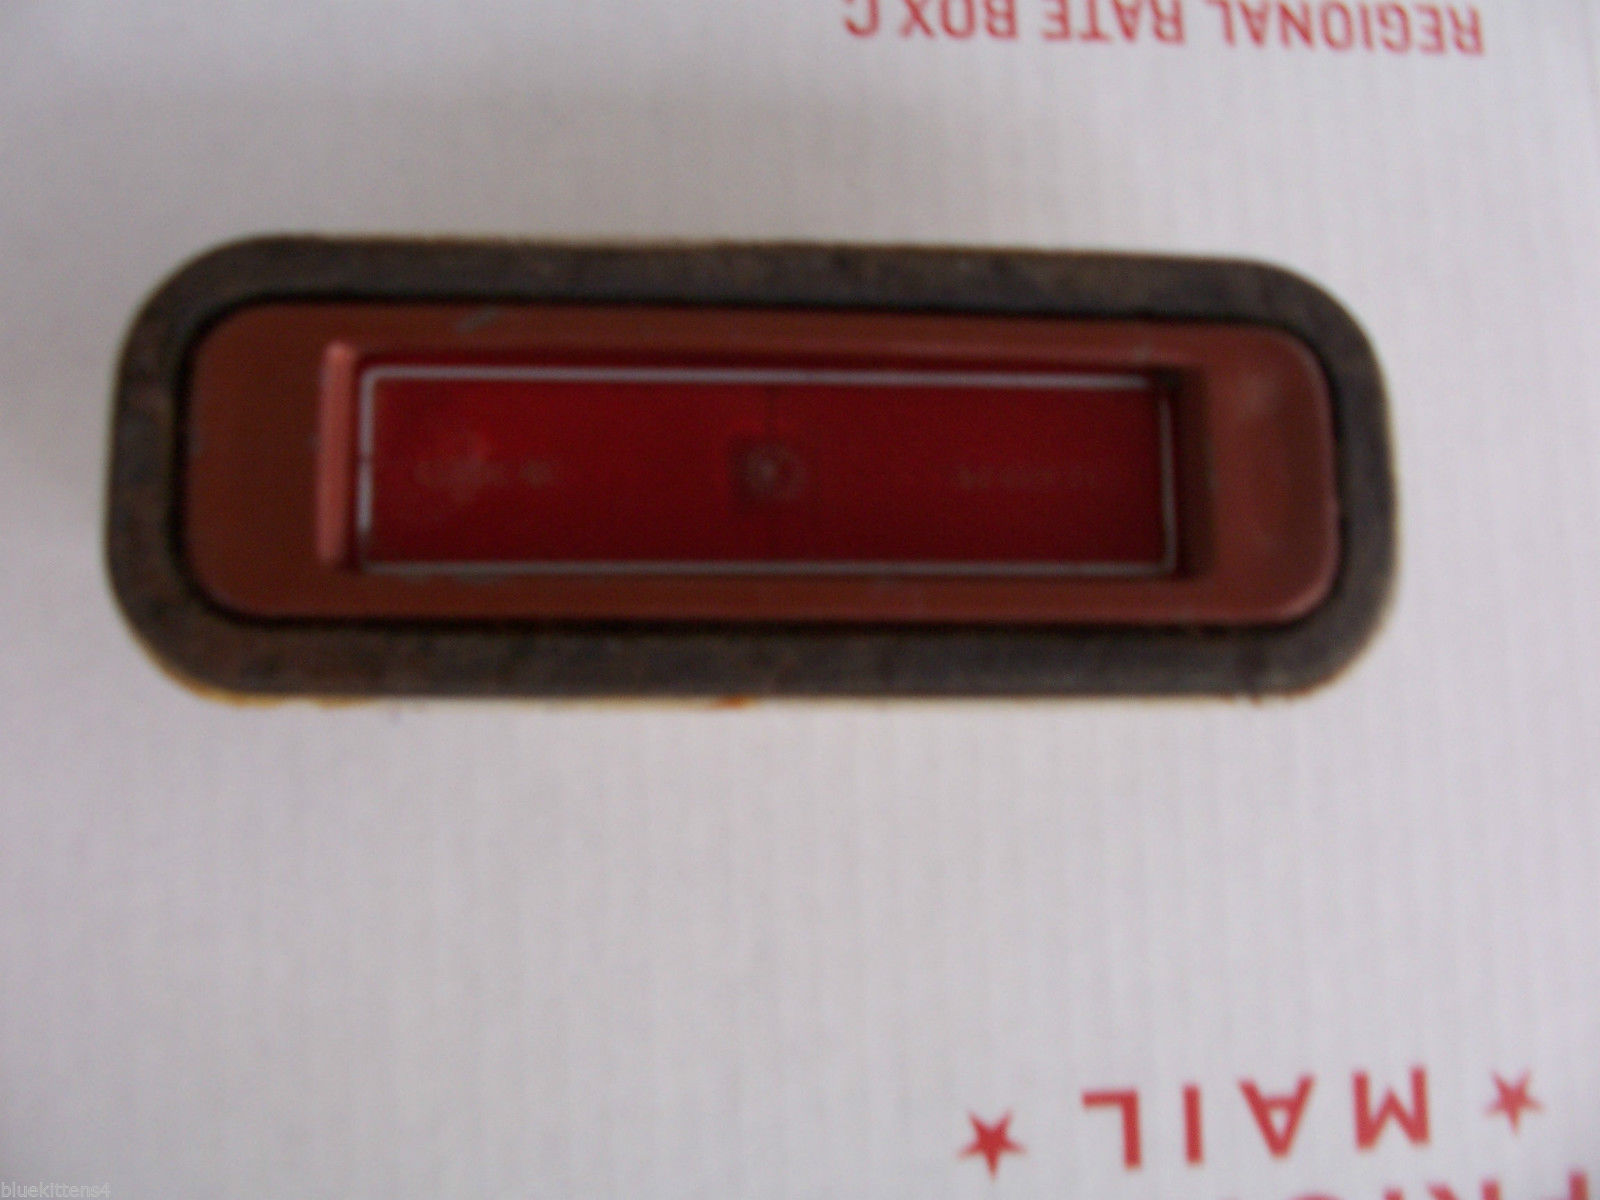 1974 BUICK RIVIERA RIGHT SIDE MARKER CLEARANCE LIGHT OEM USED ORIGINAL GM PART